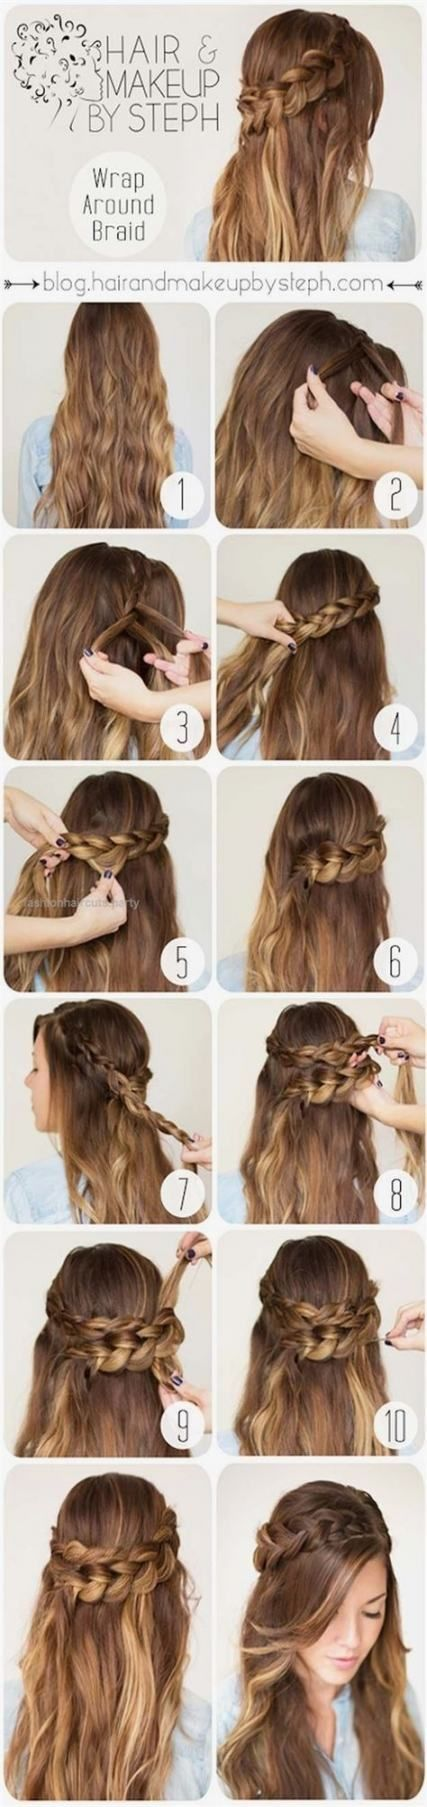 #Easy #Easy Hairstyles for work #Girl #Hairstyles #Ideas #Lazy   - Hairstyle Laz